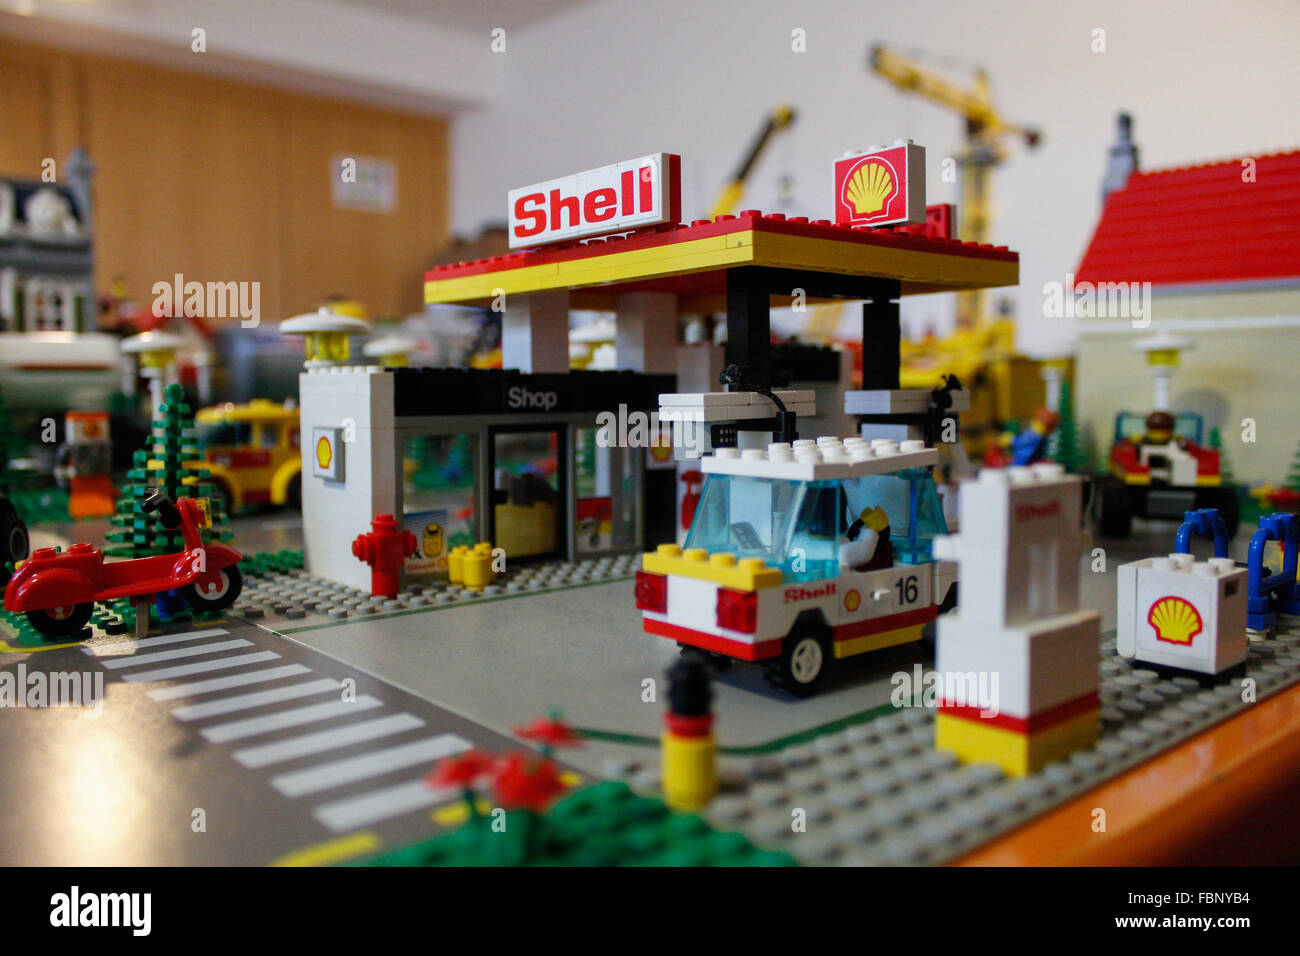 Torino Italy 17th Jan 2016 A Shell Gas Station Made Of Lego With